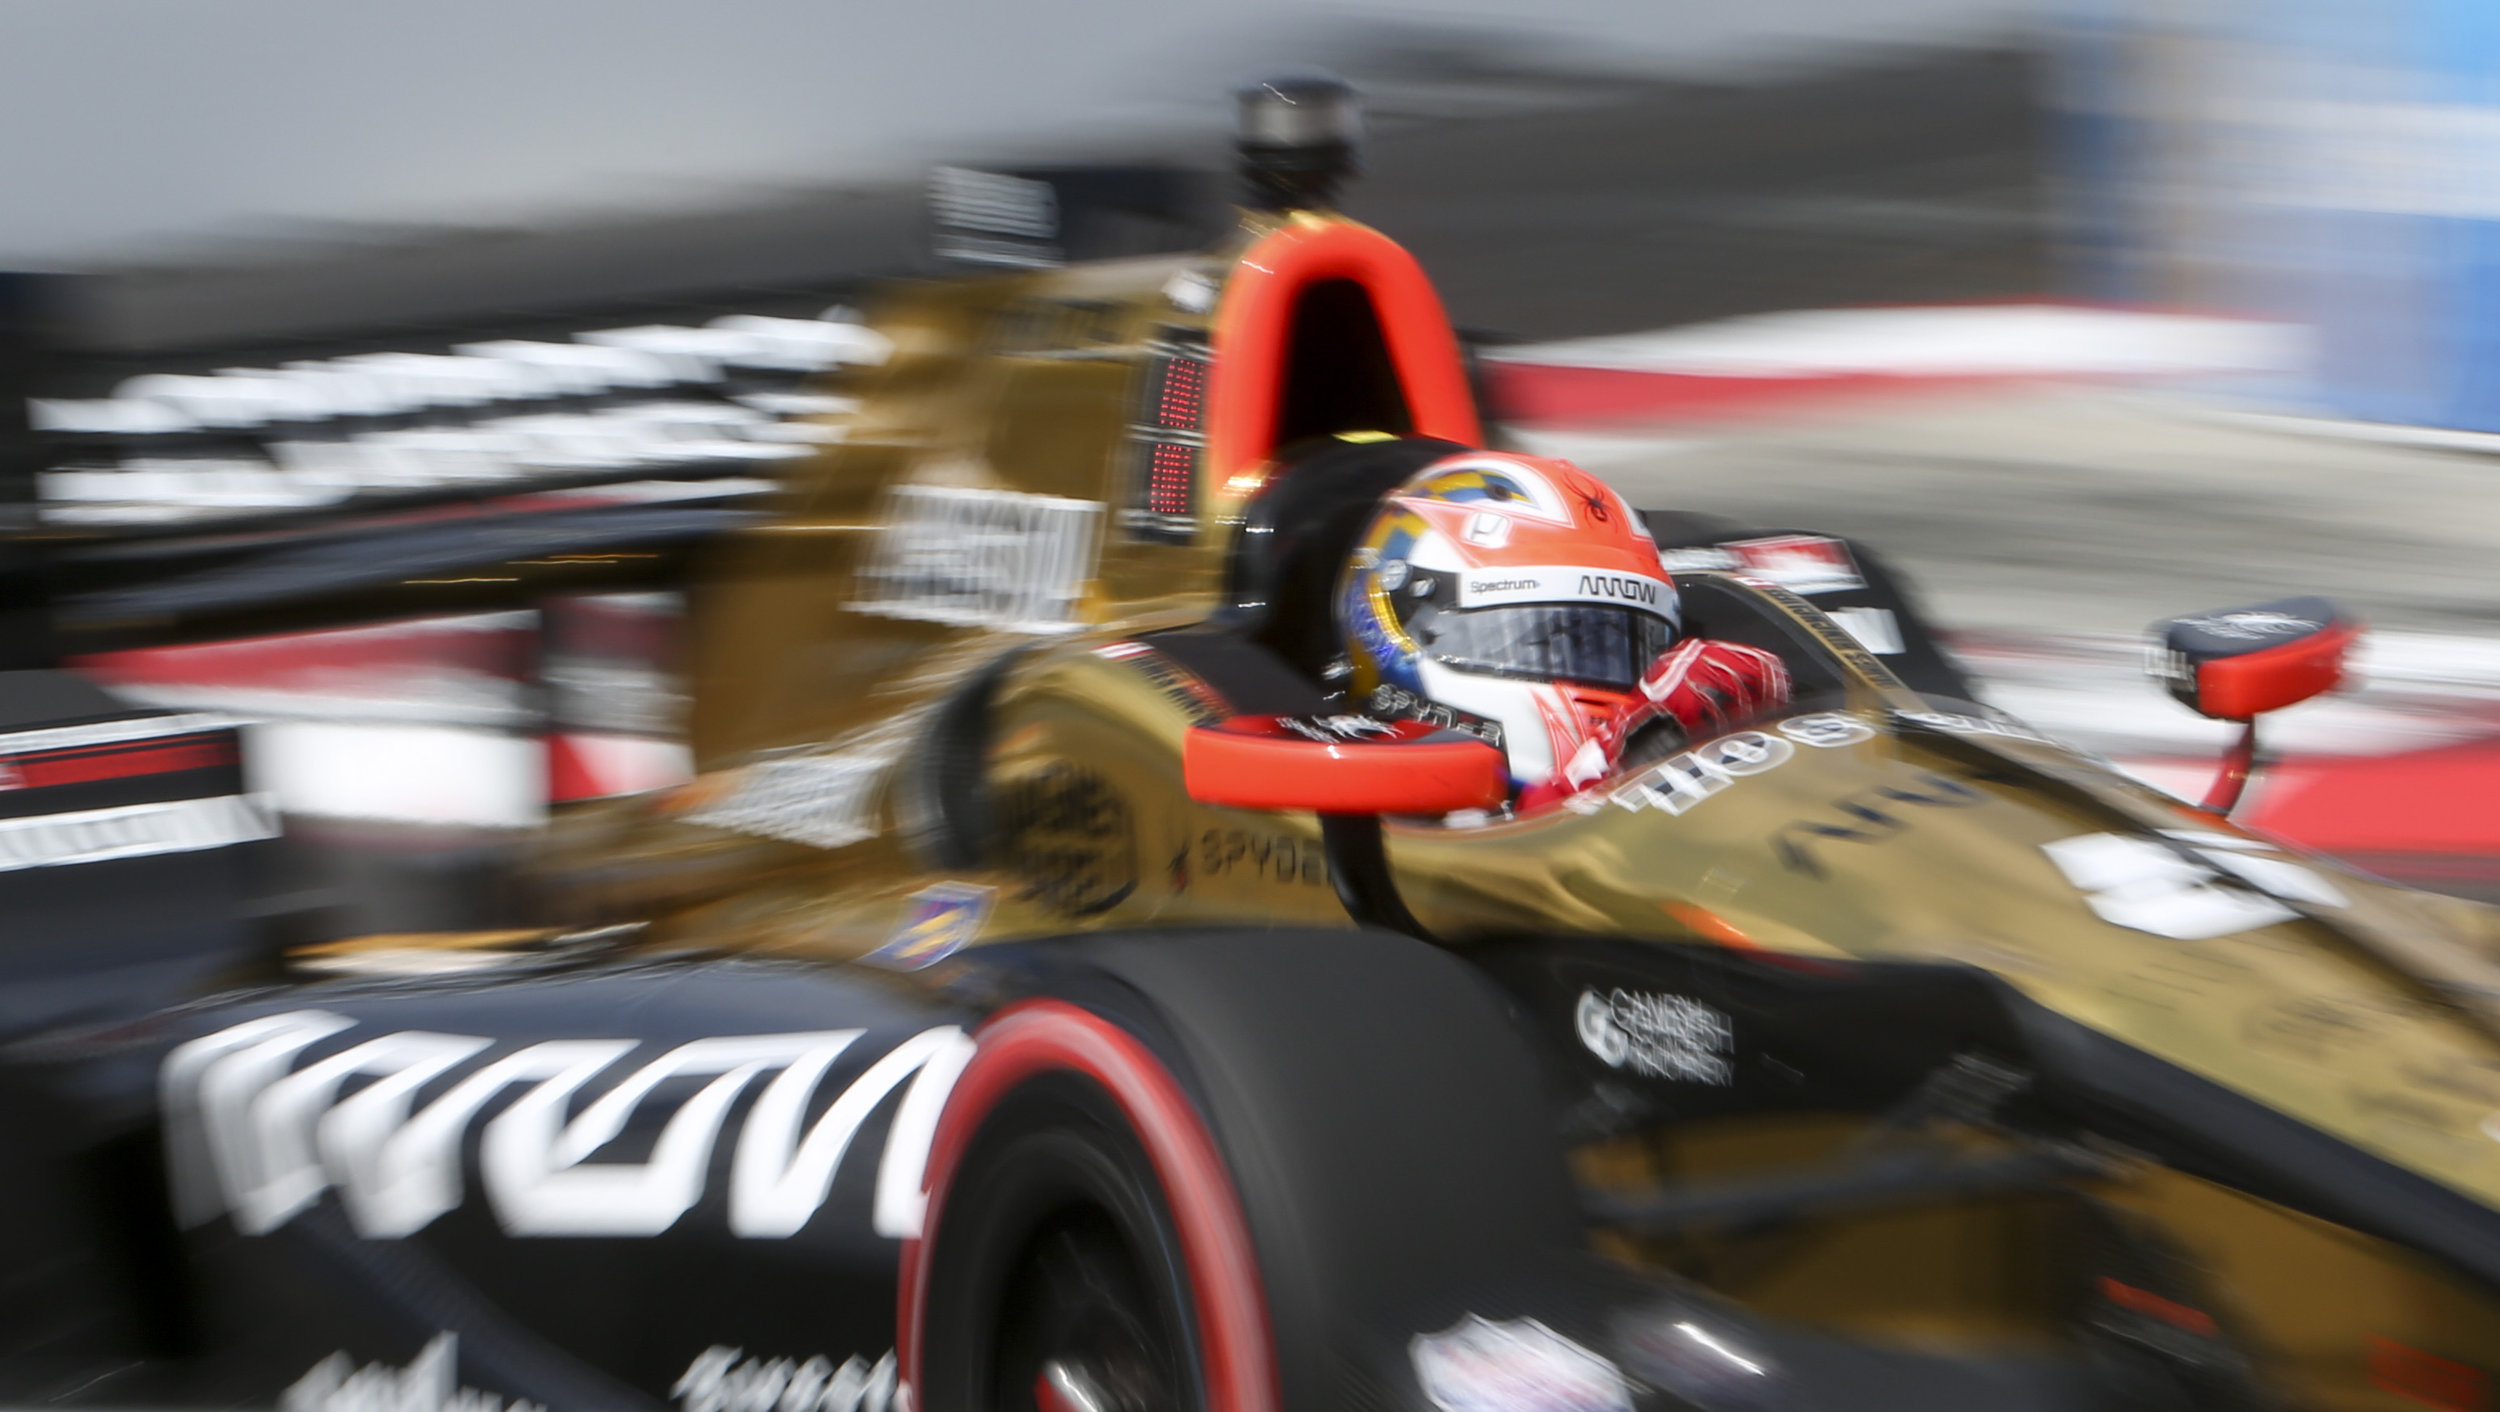 The #5 car driven by James Hinchcliffe takes turn 10 during early laps of the Firestone Grand Prix of St. Petersburg Sunday, March 12, 2017 in St. Petersburg.